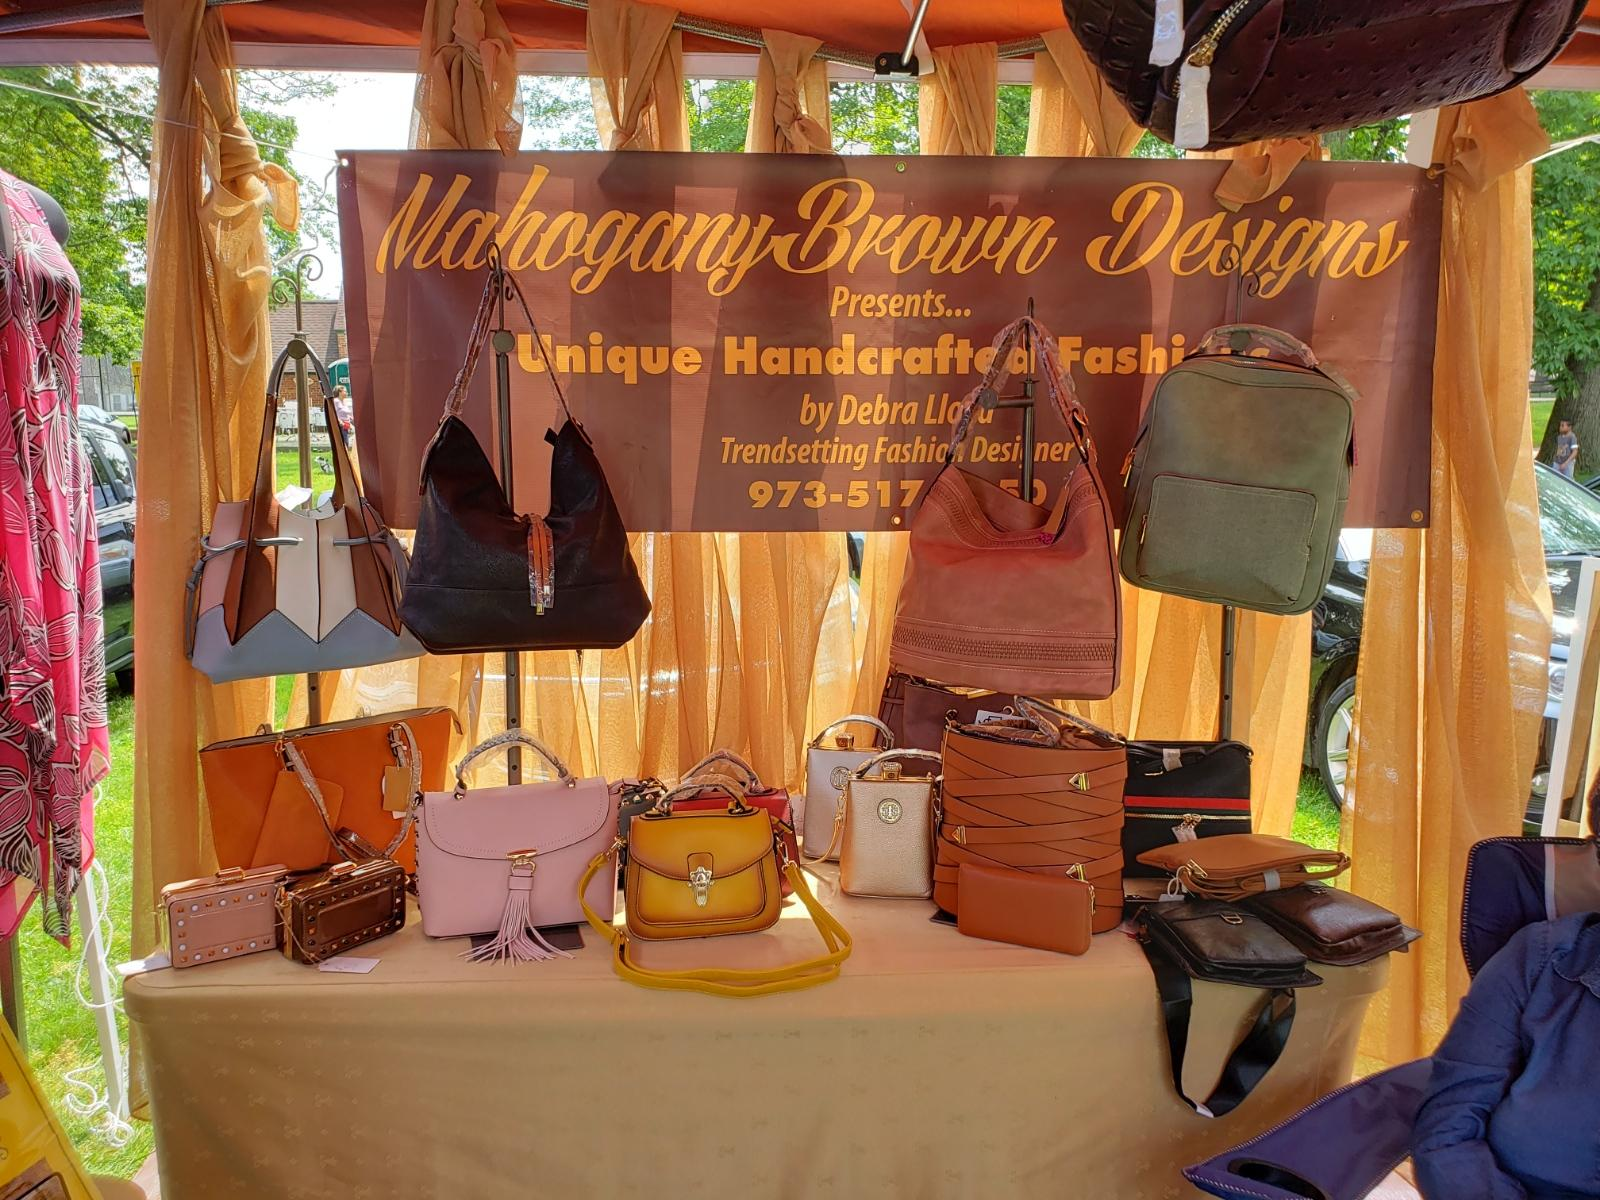 MahoganyBrown Designs